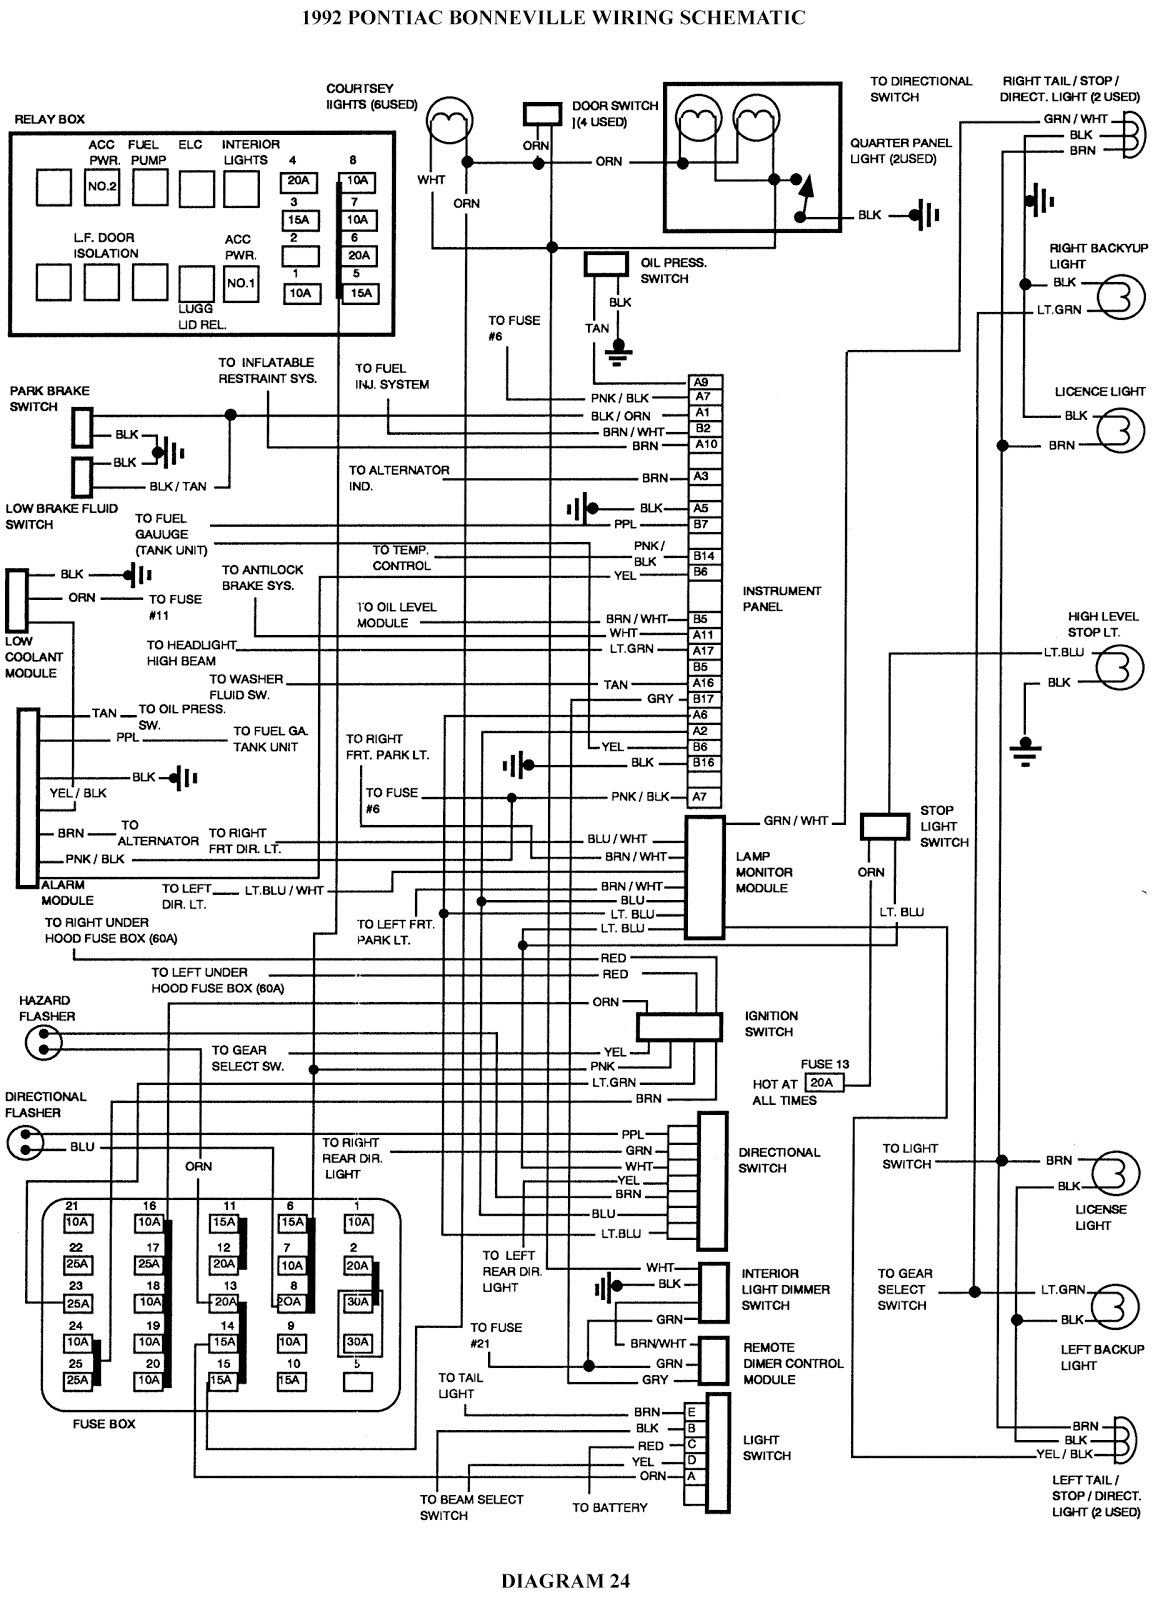 1992 chevy door diagram wiring schematic